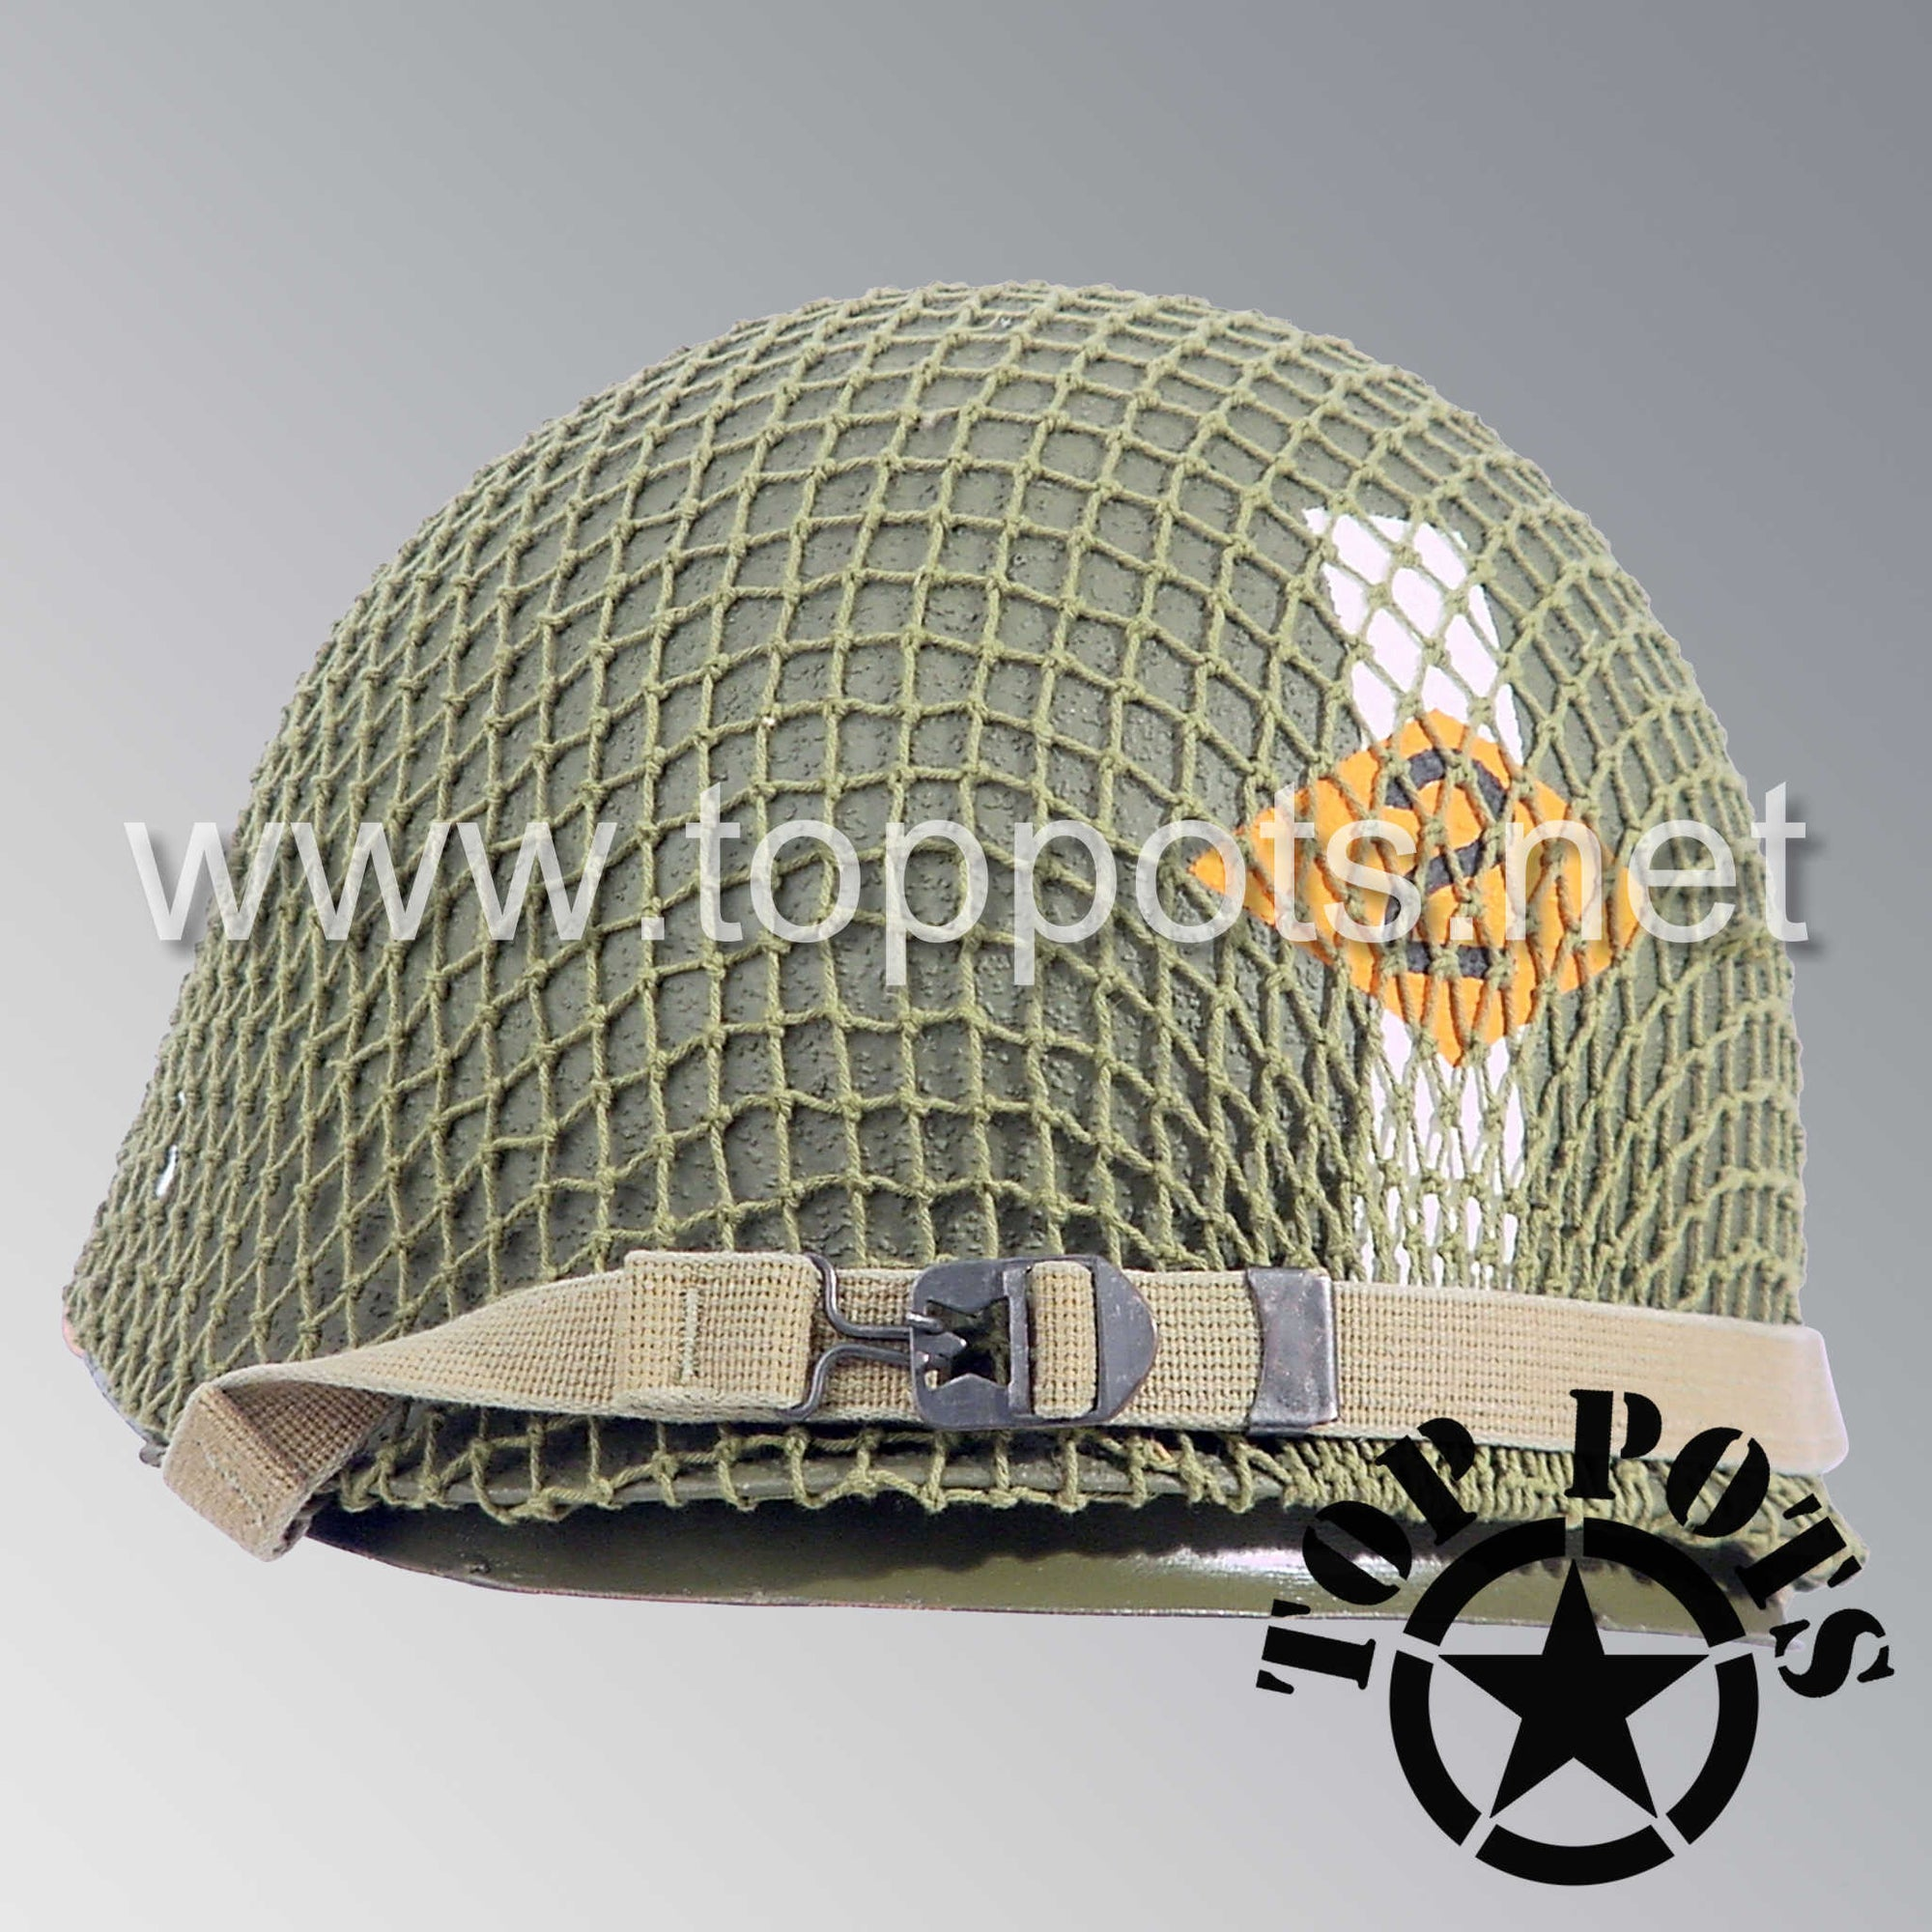 Image 5 of WWII US Army Restored Original M1 Infantry Helmet Swivel Bale Shell and Liner with 2nd Ranger Officer Captain Miller Metal Rank and Net